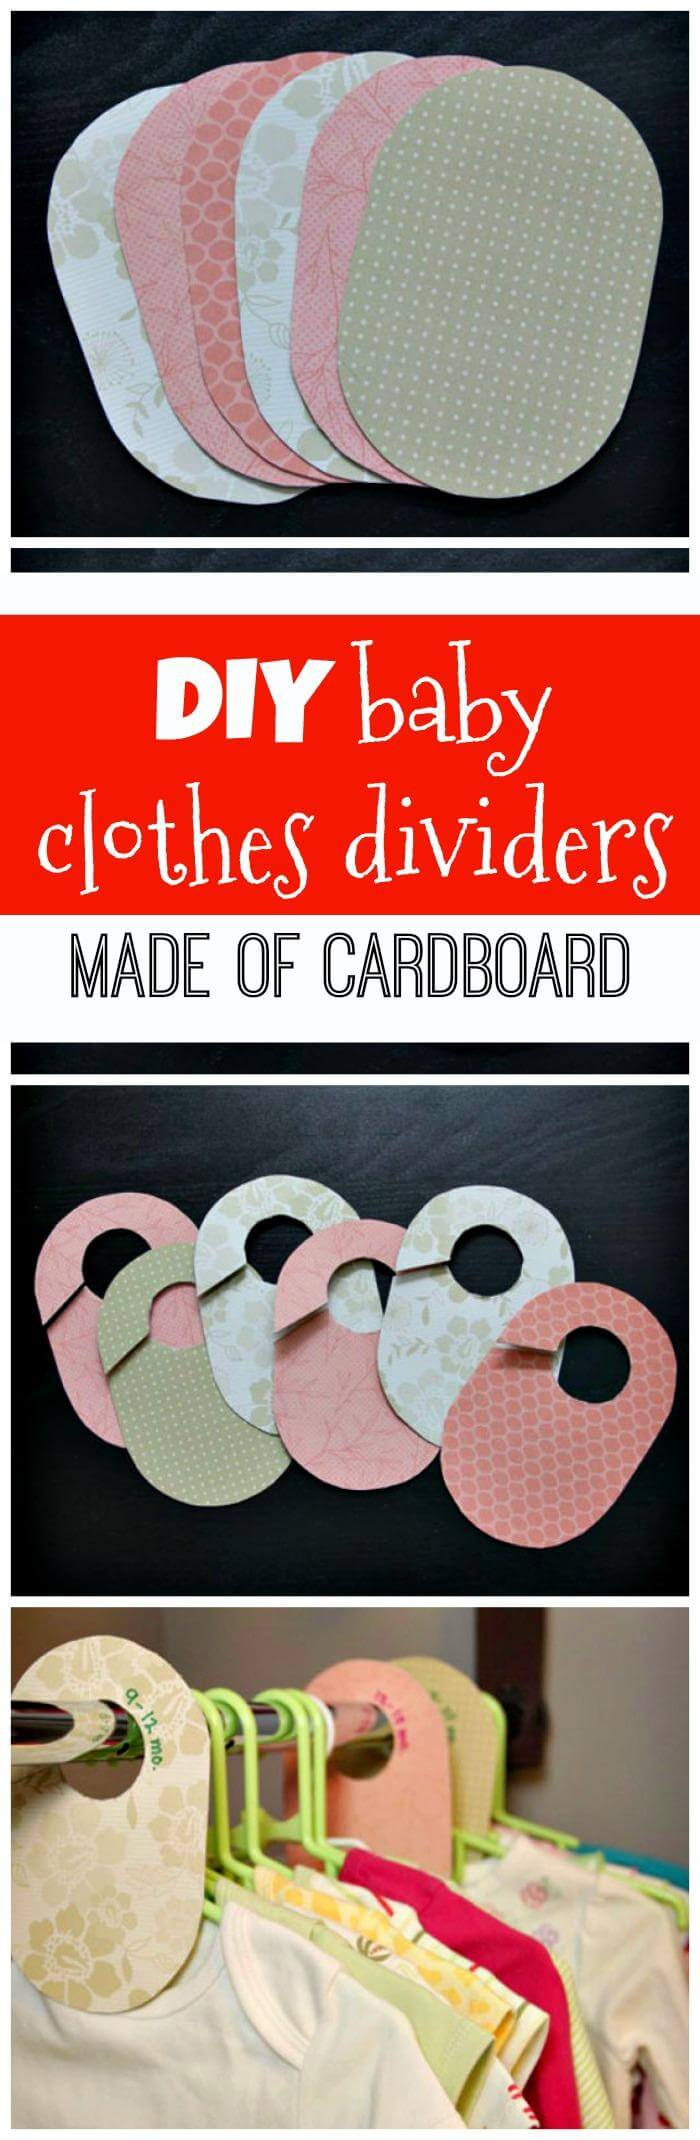 DIY baby clothes dividers made of cardboard